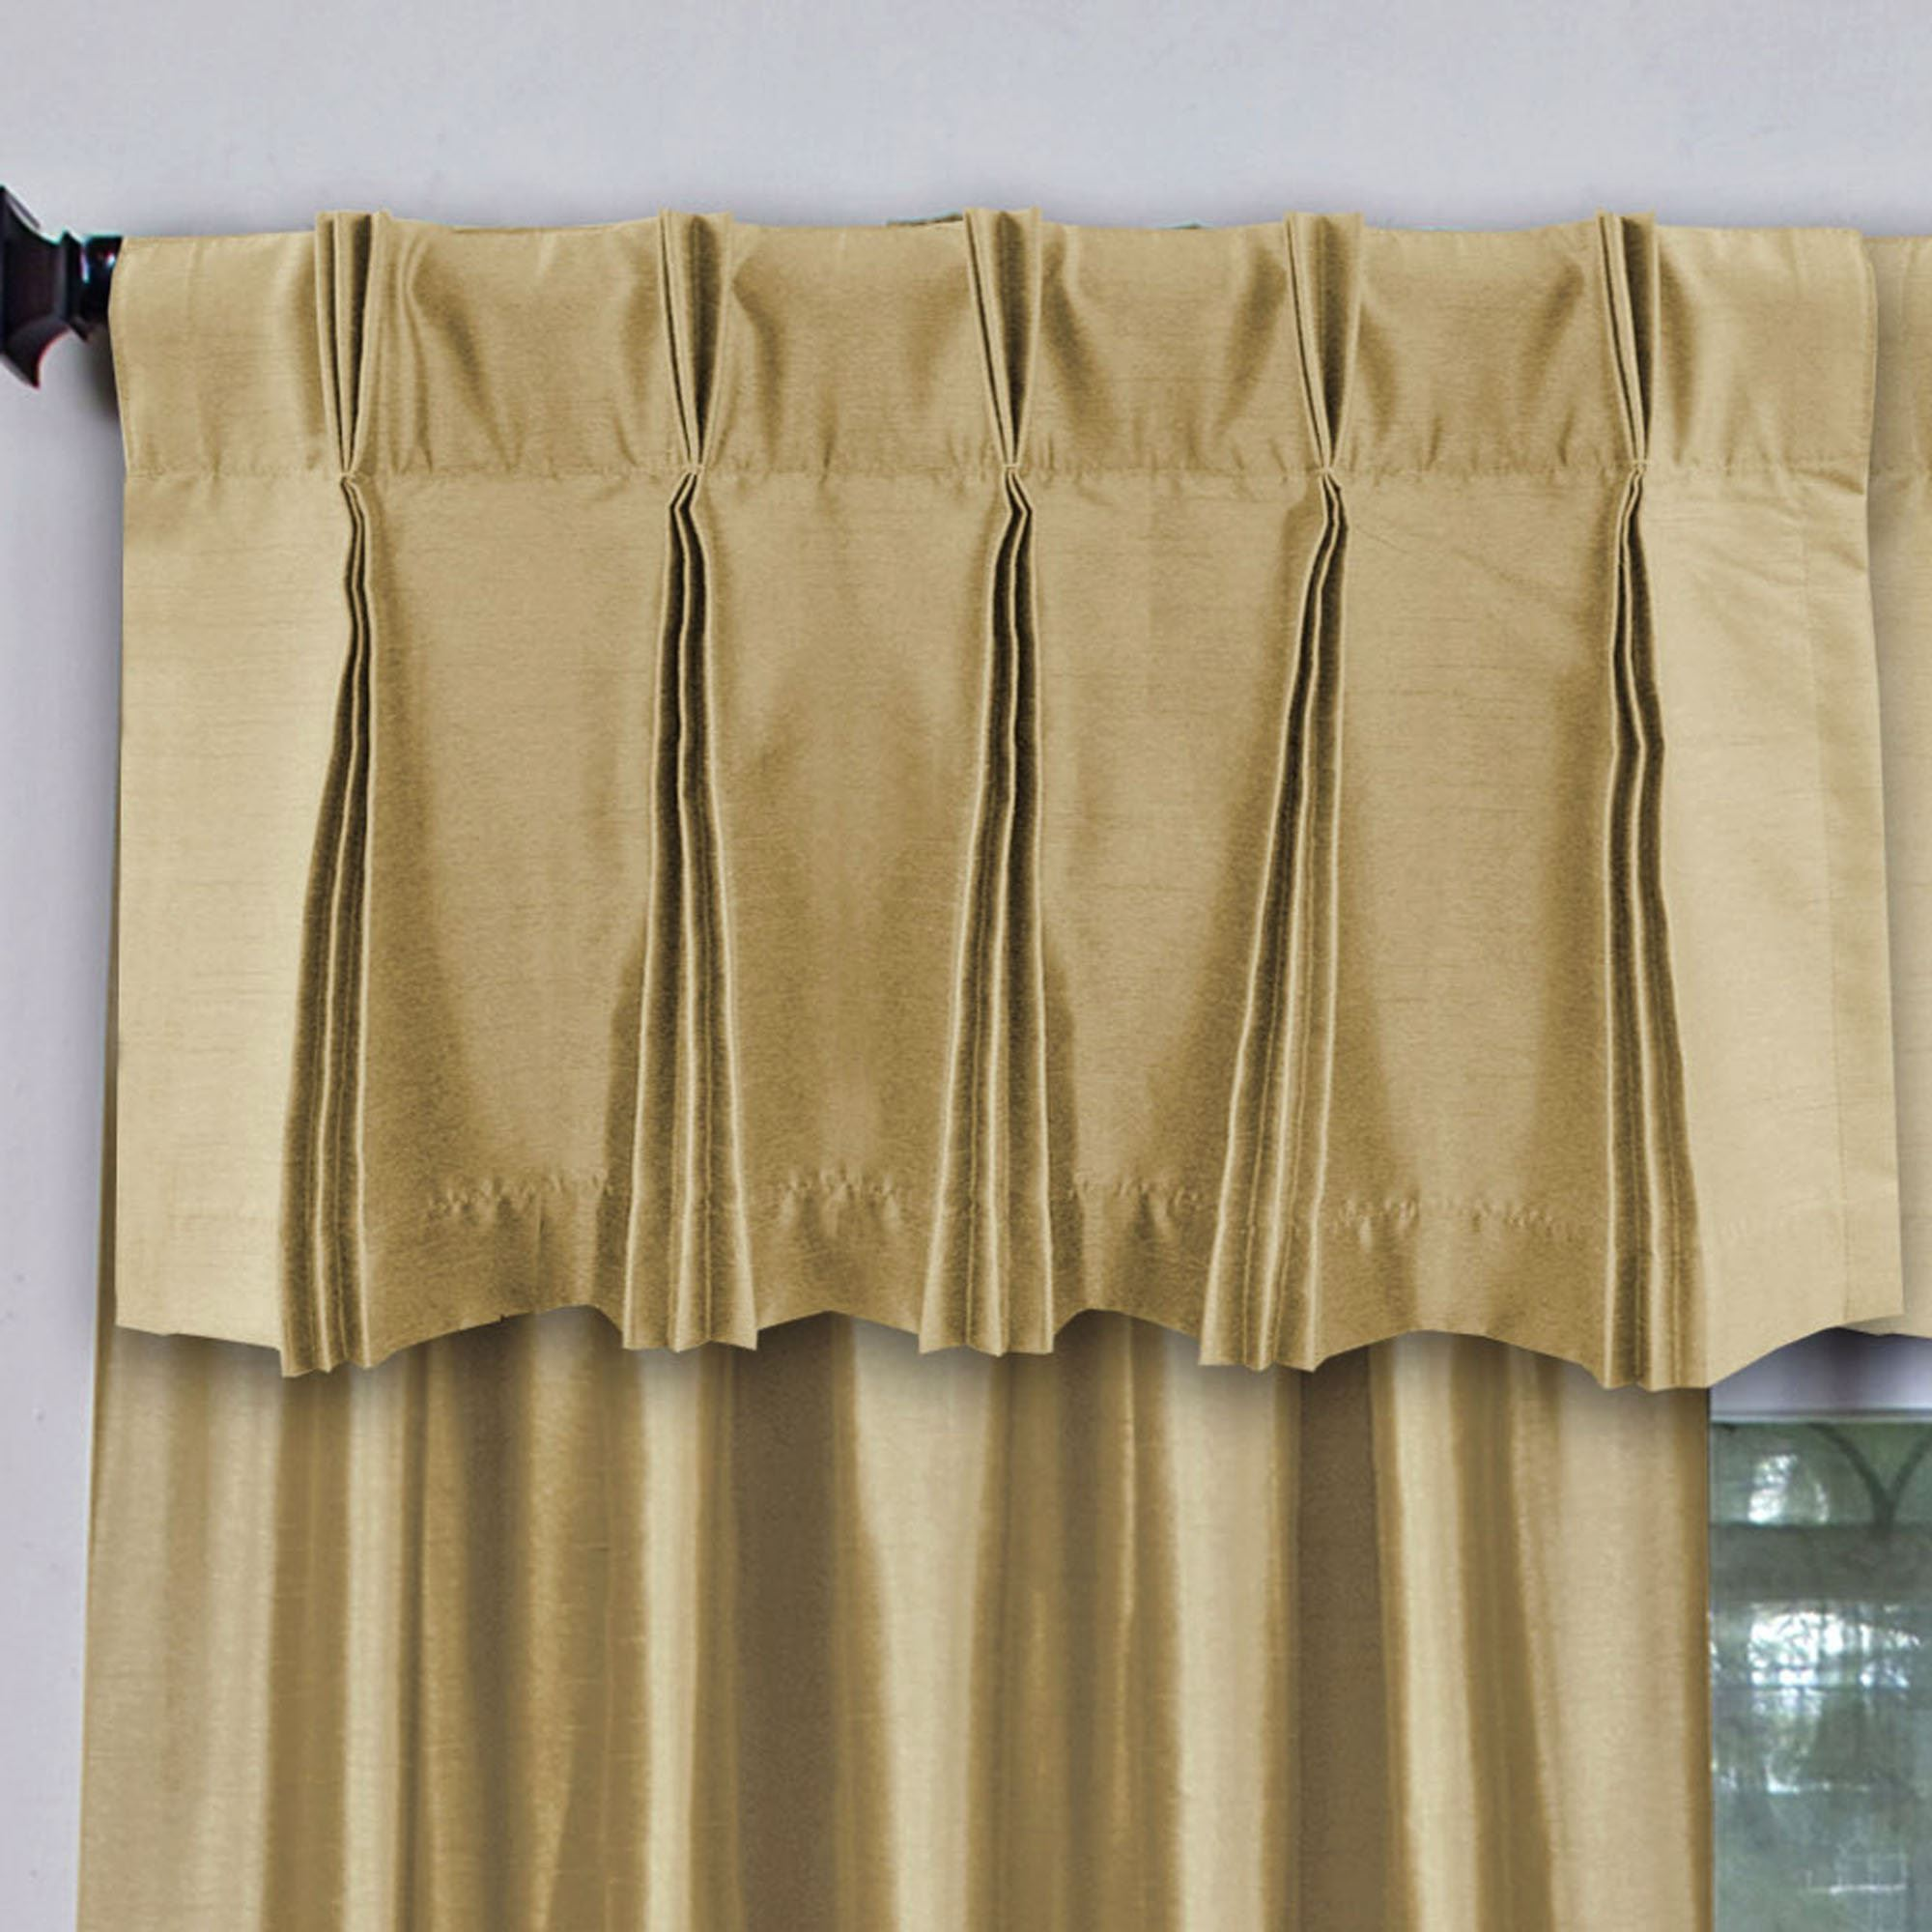 ideas pleat you s best curtains valance can the pinch curtain